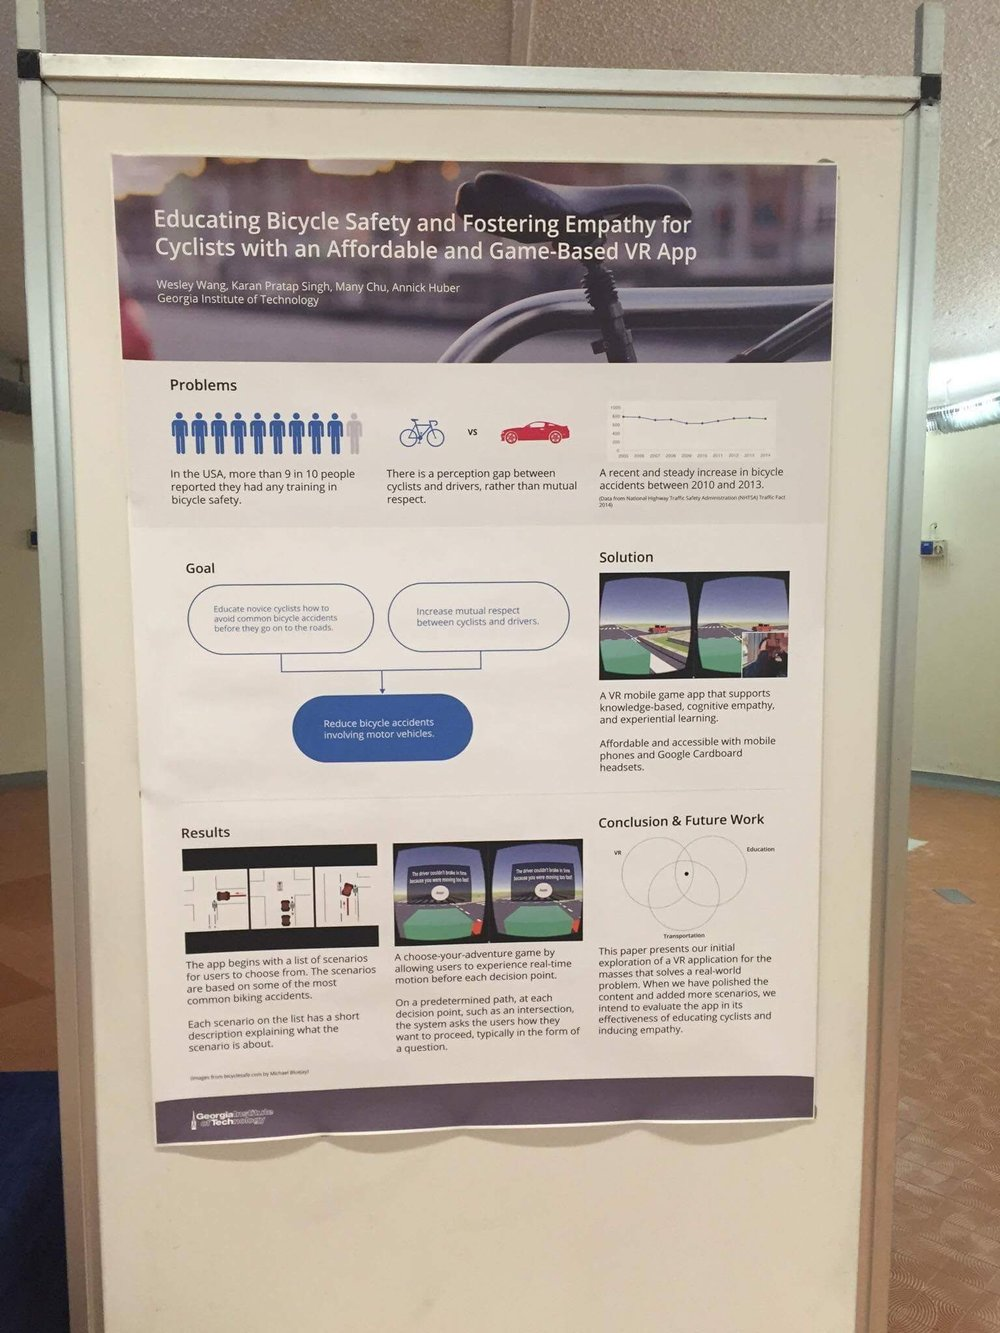 Our poster at the presentation room